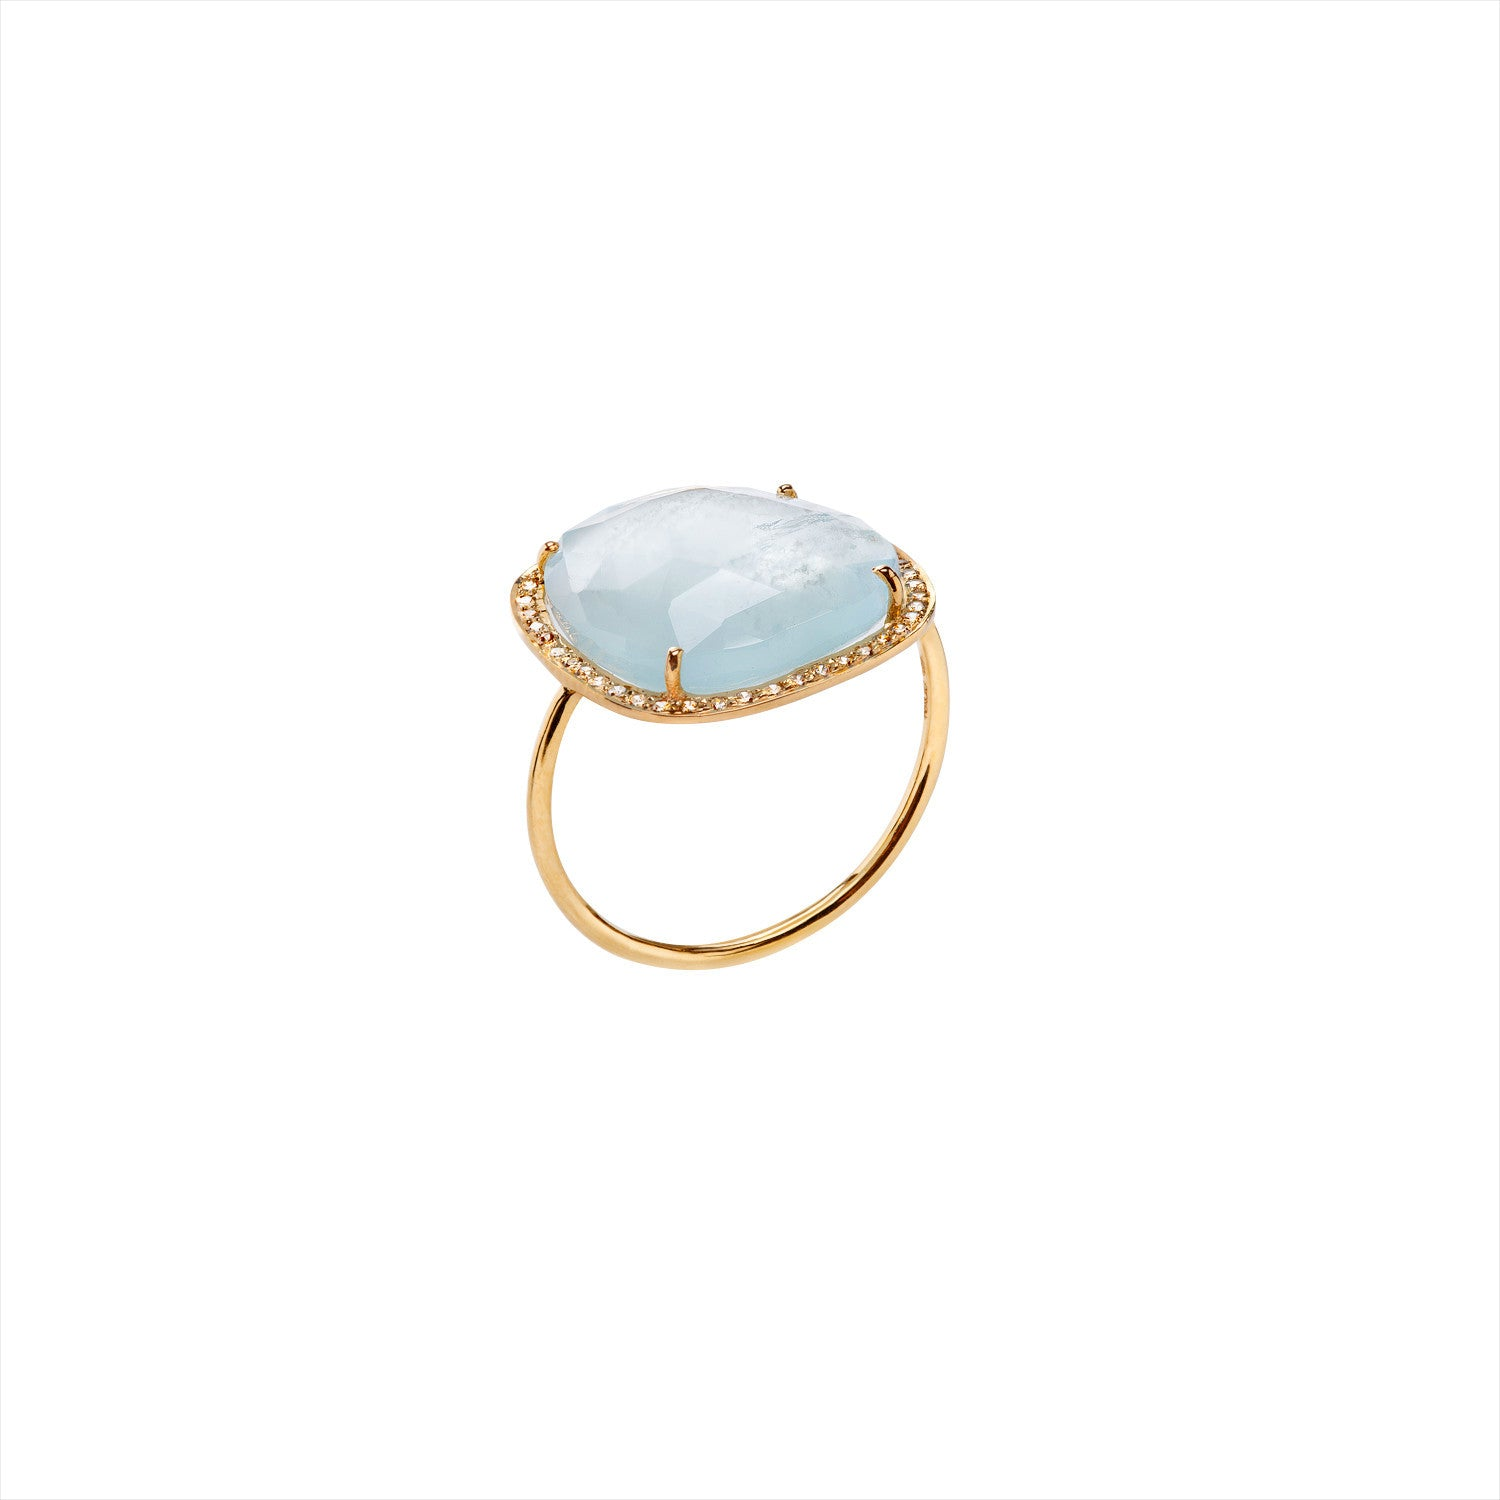 Bague Femme HEAVEN, Or 18k, Aigue-marine, Diamants